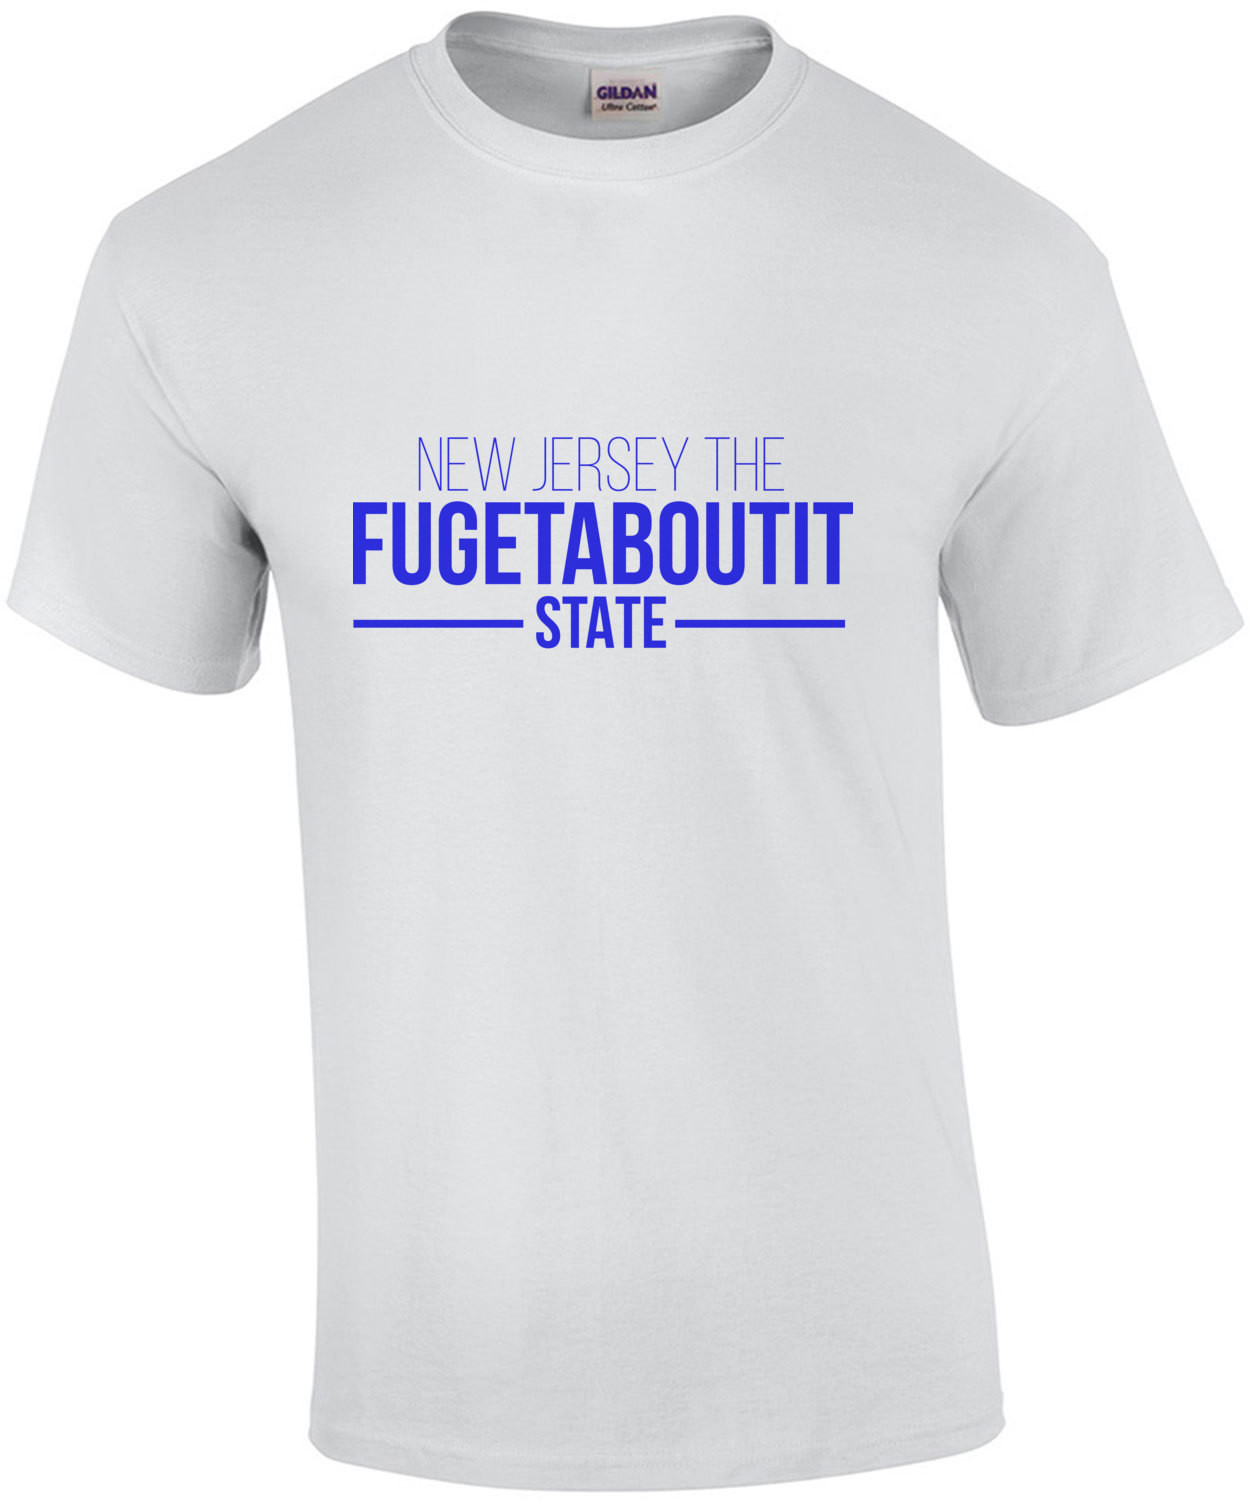 New Jersey The Fugetaboutit State - New Jersey T-Shirt